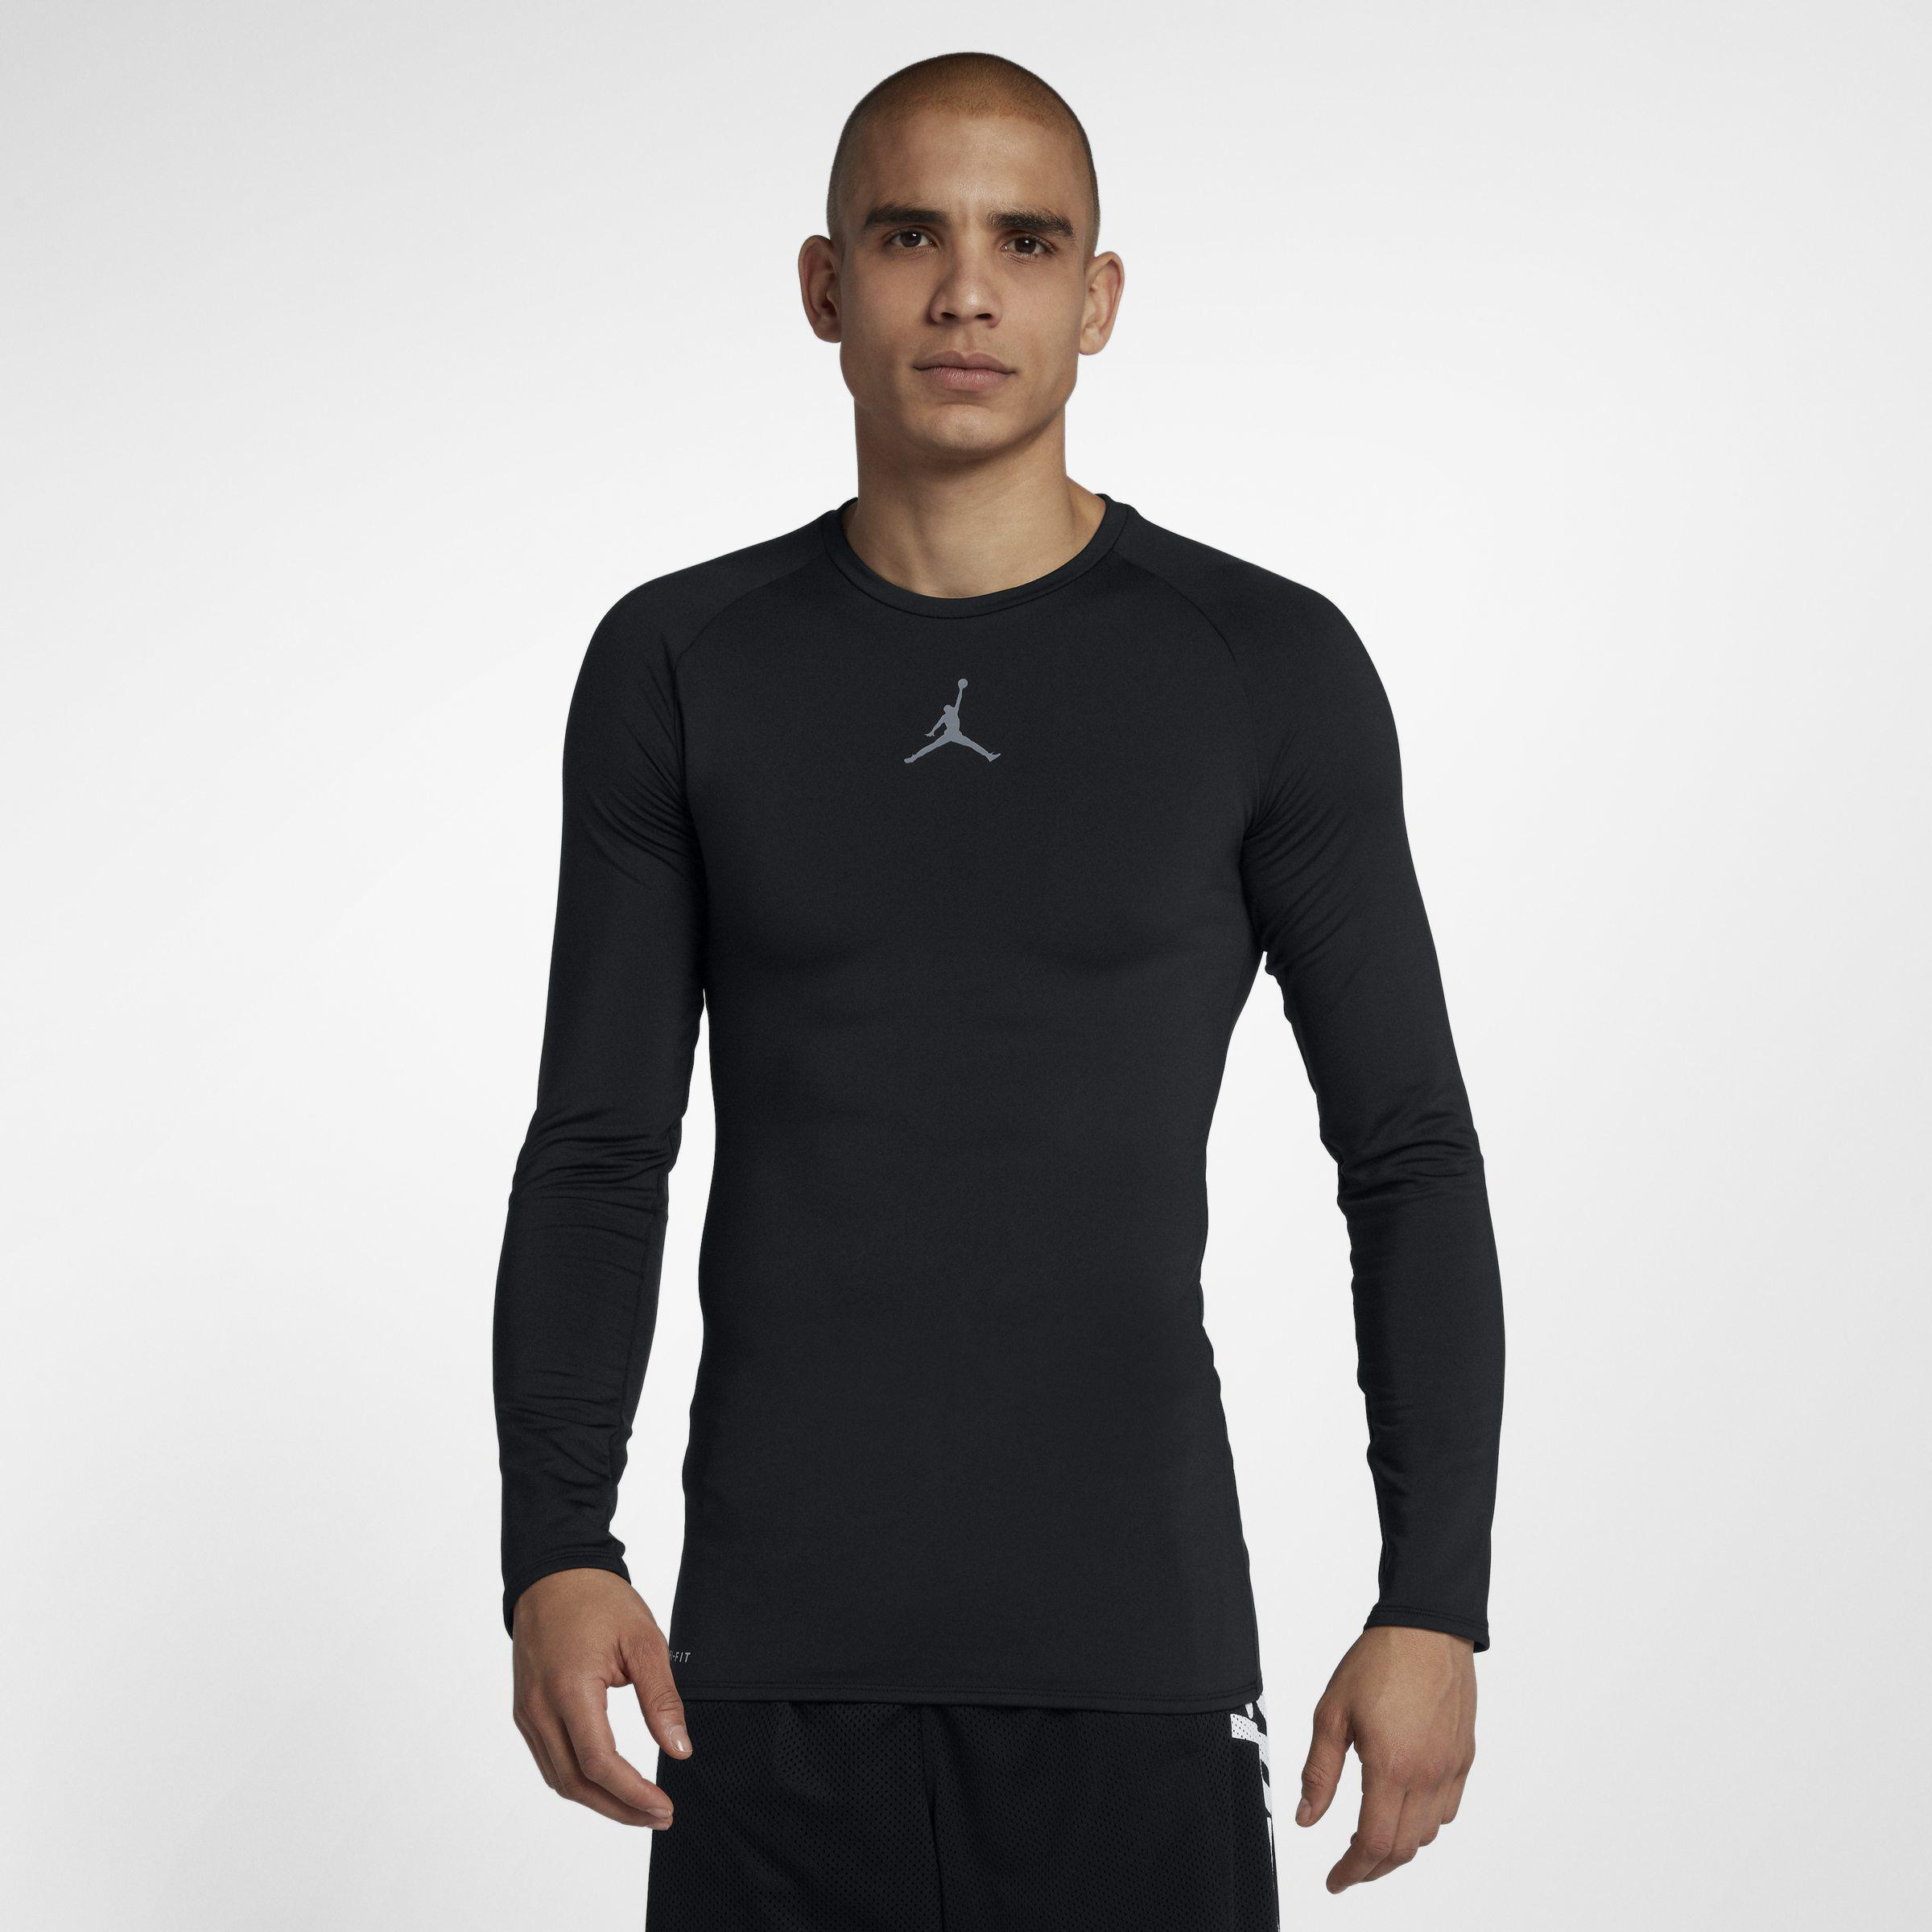 fbc4e6e7343b Nike Jordan 23 Alpha Long-sleeve Basketball Top in Black for Men - Lyst